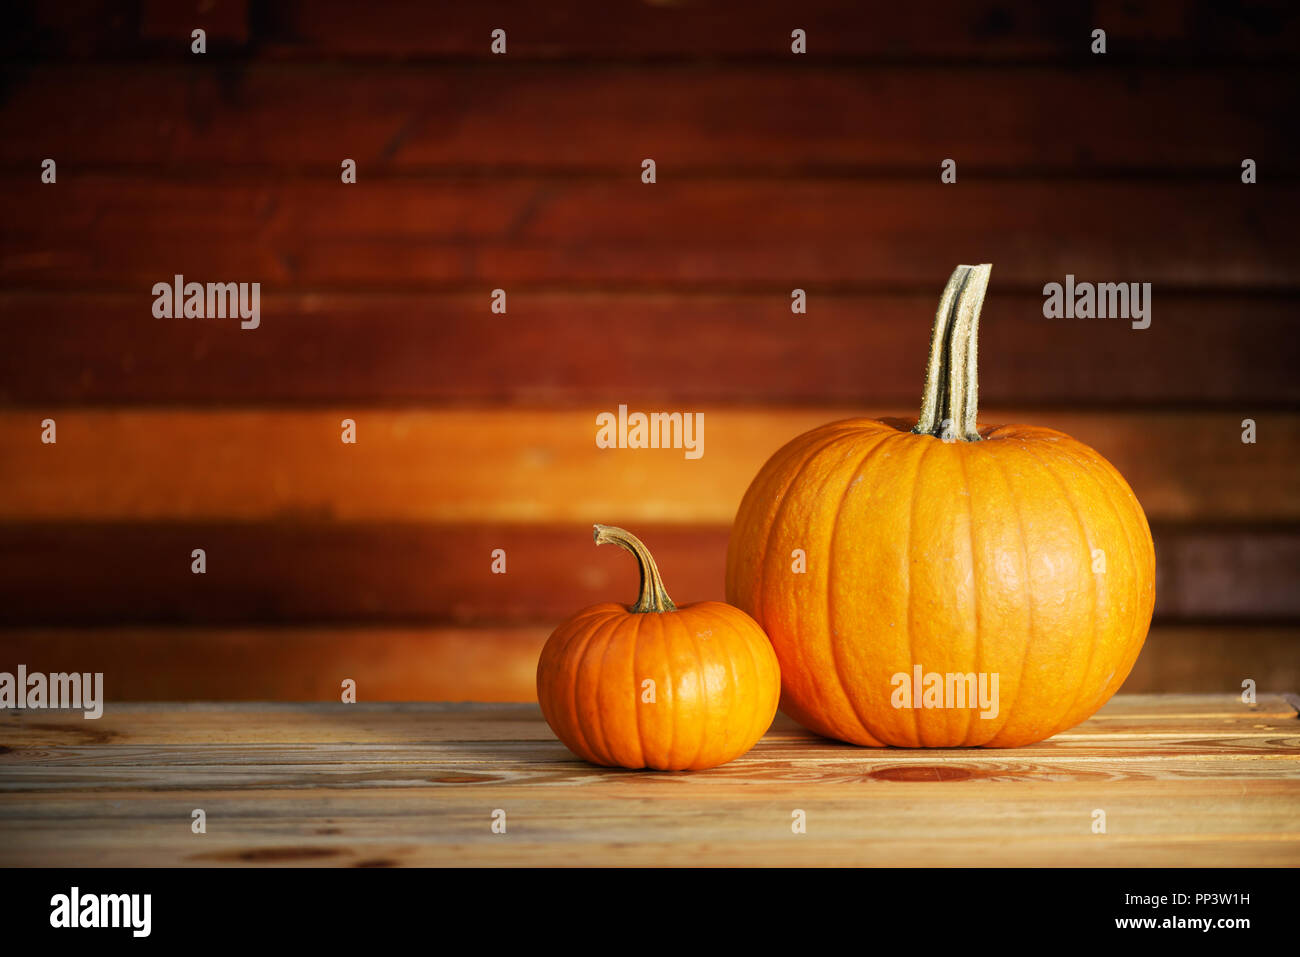 Two pumpkins on wooden table. Halloween and autumn food background Stock Photo